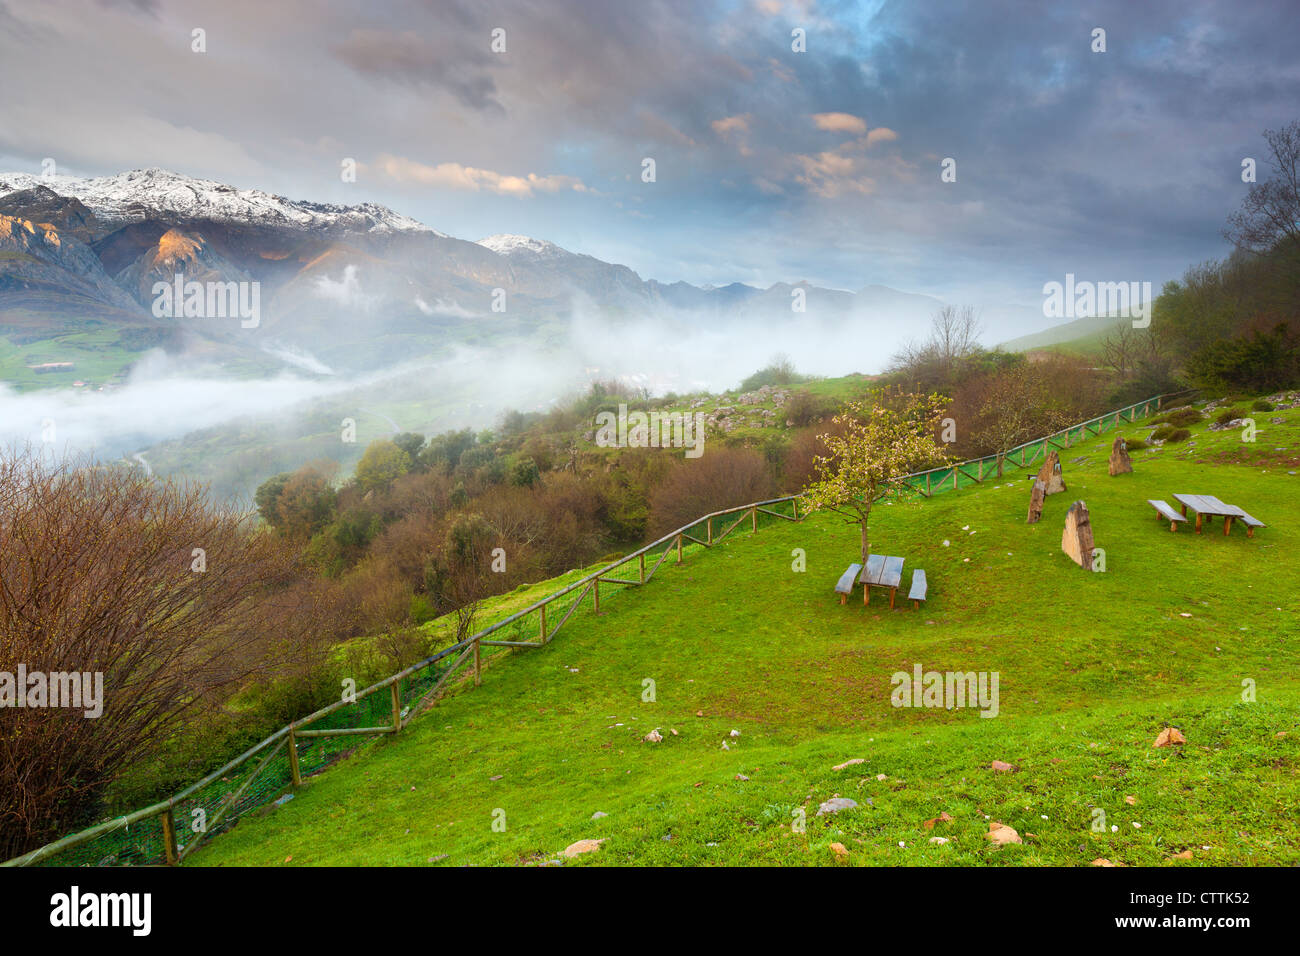 A view on the Picos de Europa National Park from the north, near Mirador Pedro Udaondo, Asturias - Stock Image